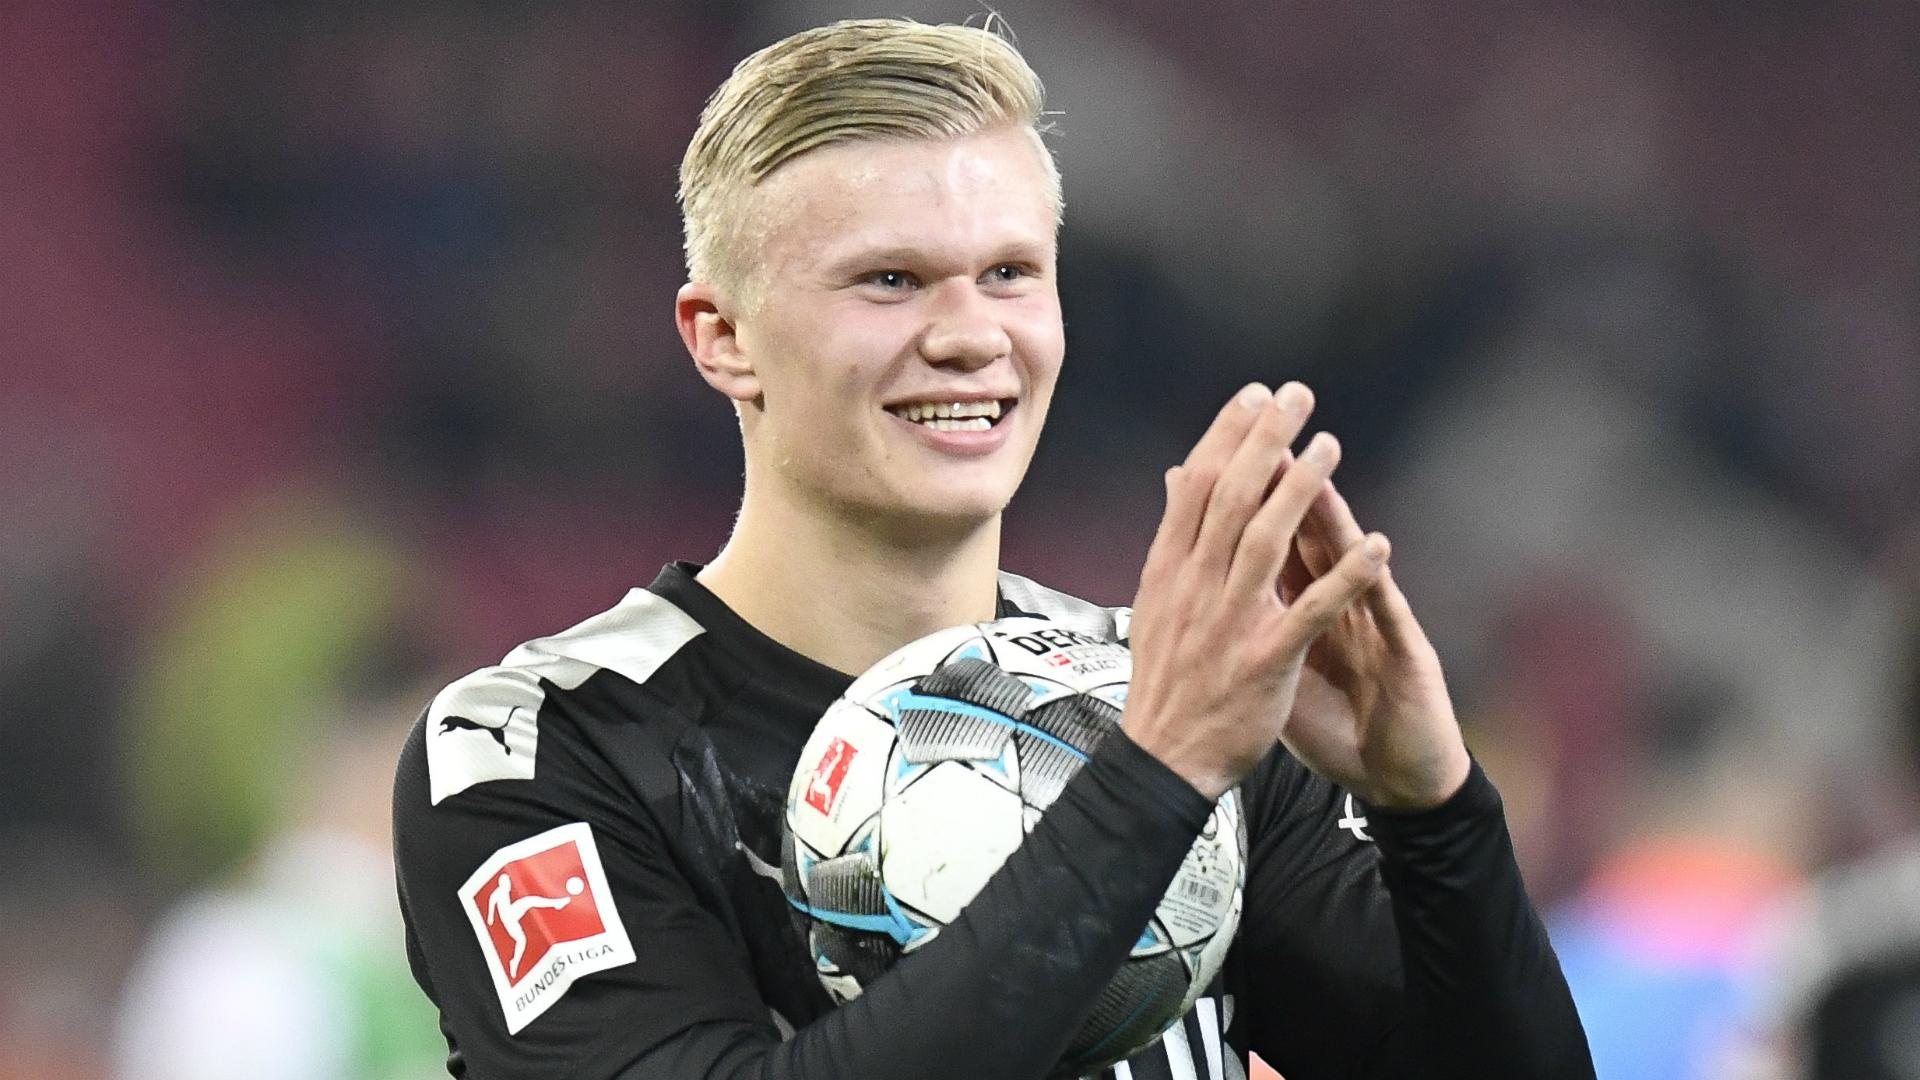 Haaland Can Become One Of The Best In The World Dortmund Striker Will Be Fun To Watch Says Marsch